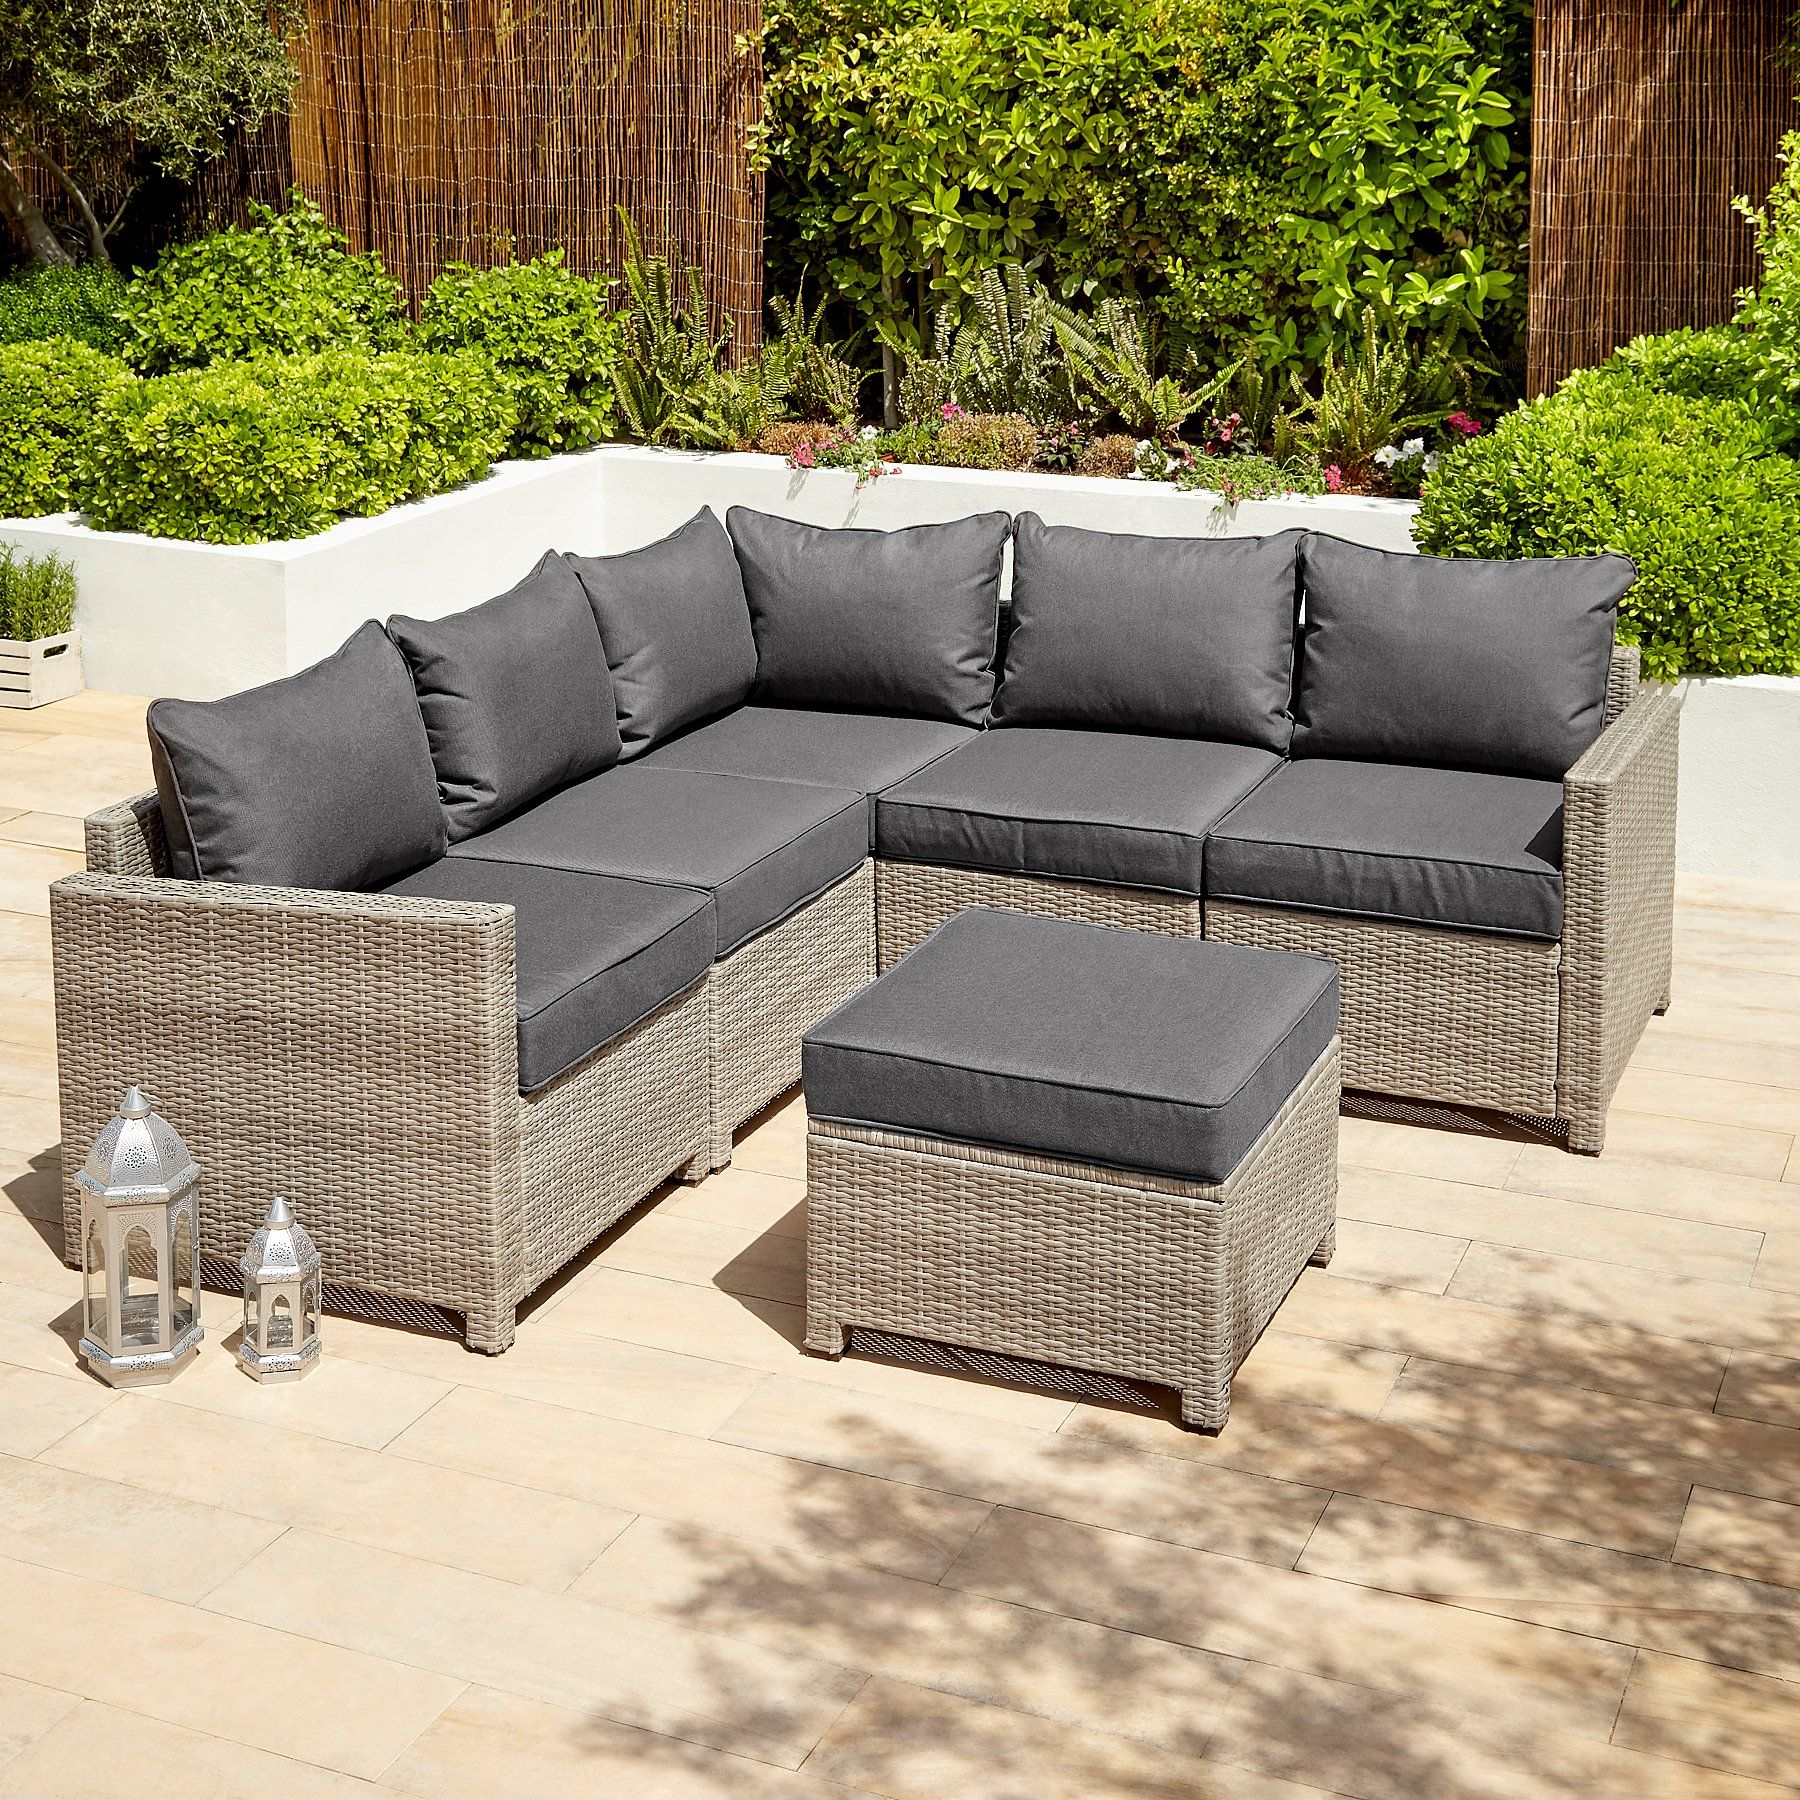 Jakarta Charcoal Corner Group Garden Sofa  Outdoor & Garden